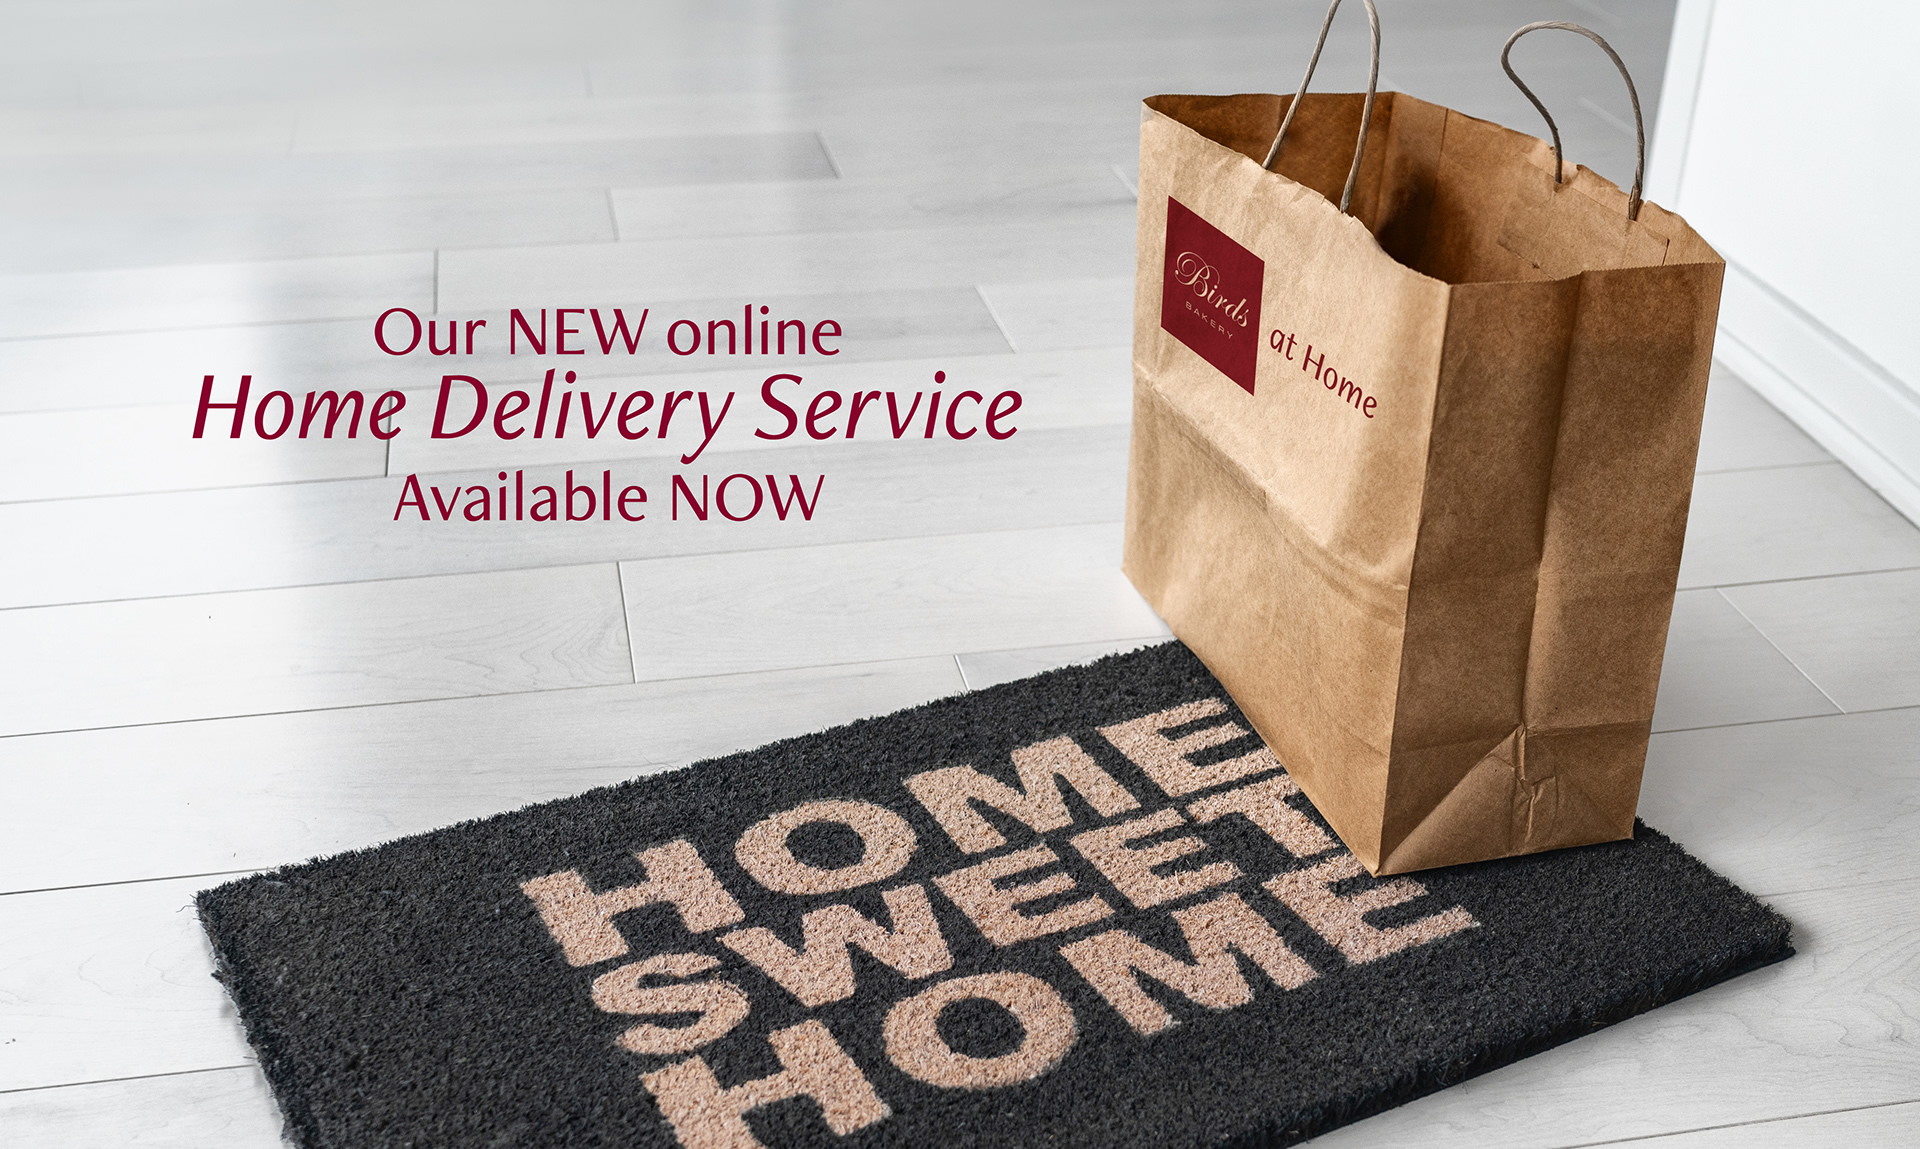 Our NEW online Home Delivery Service. Available NOW